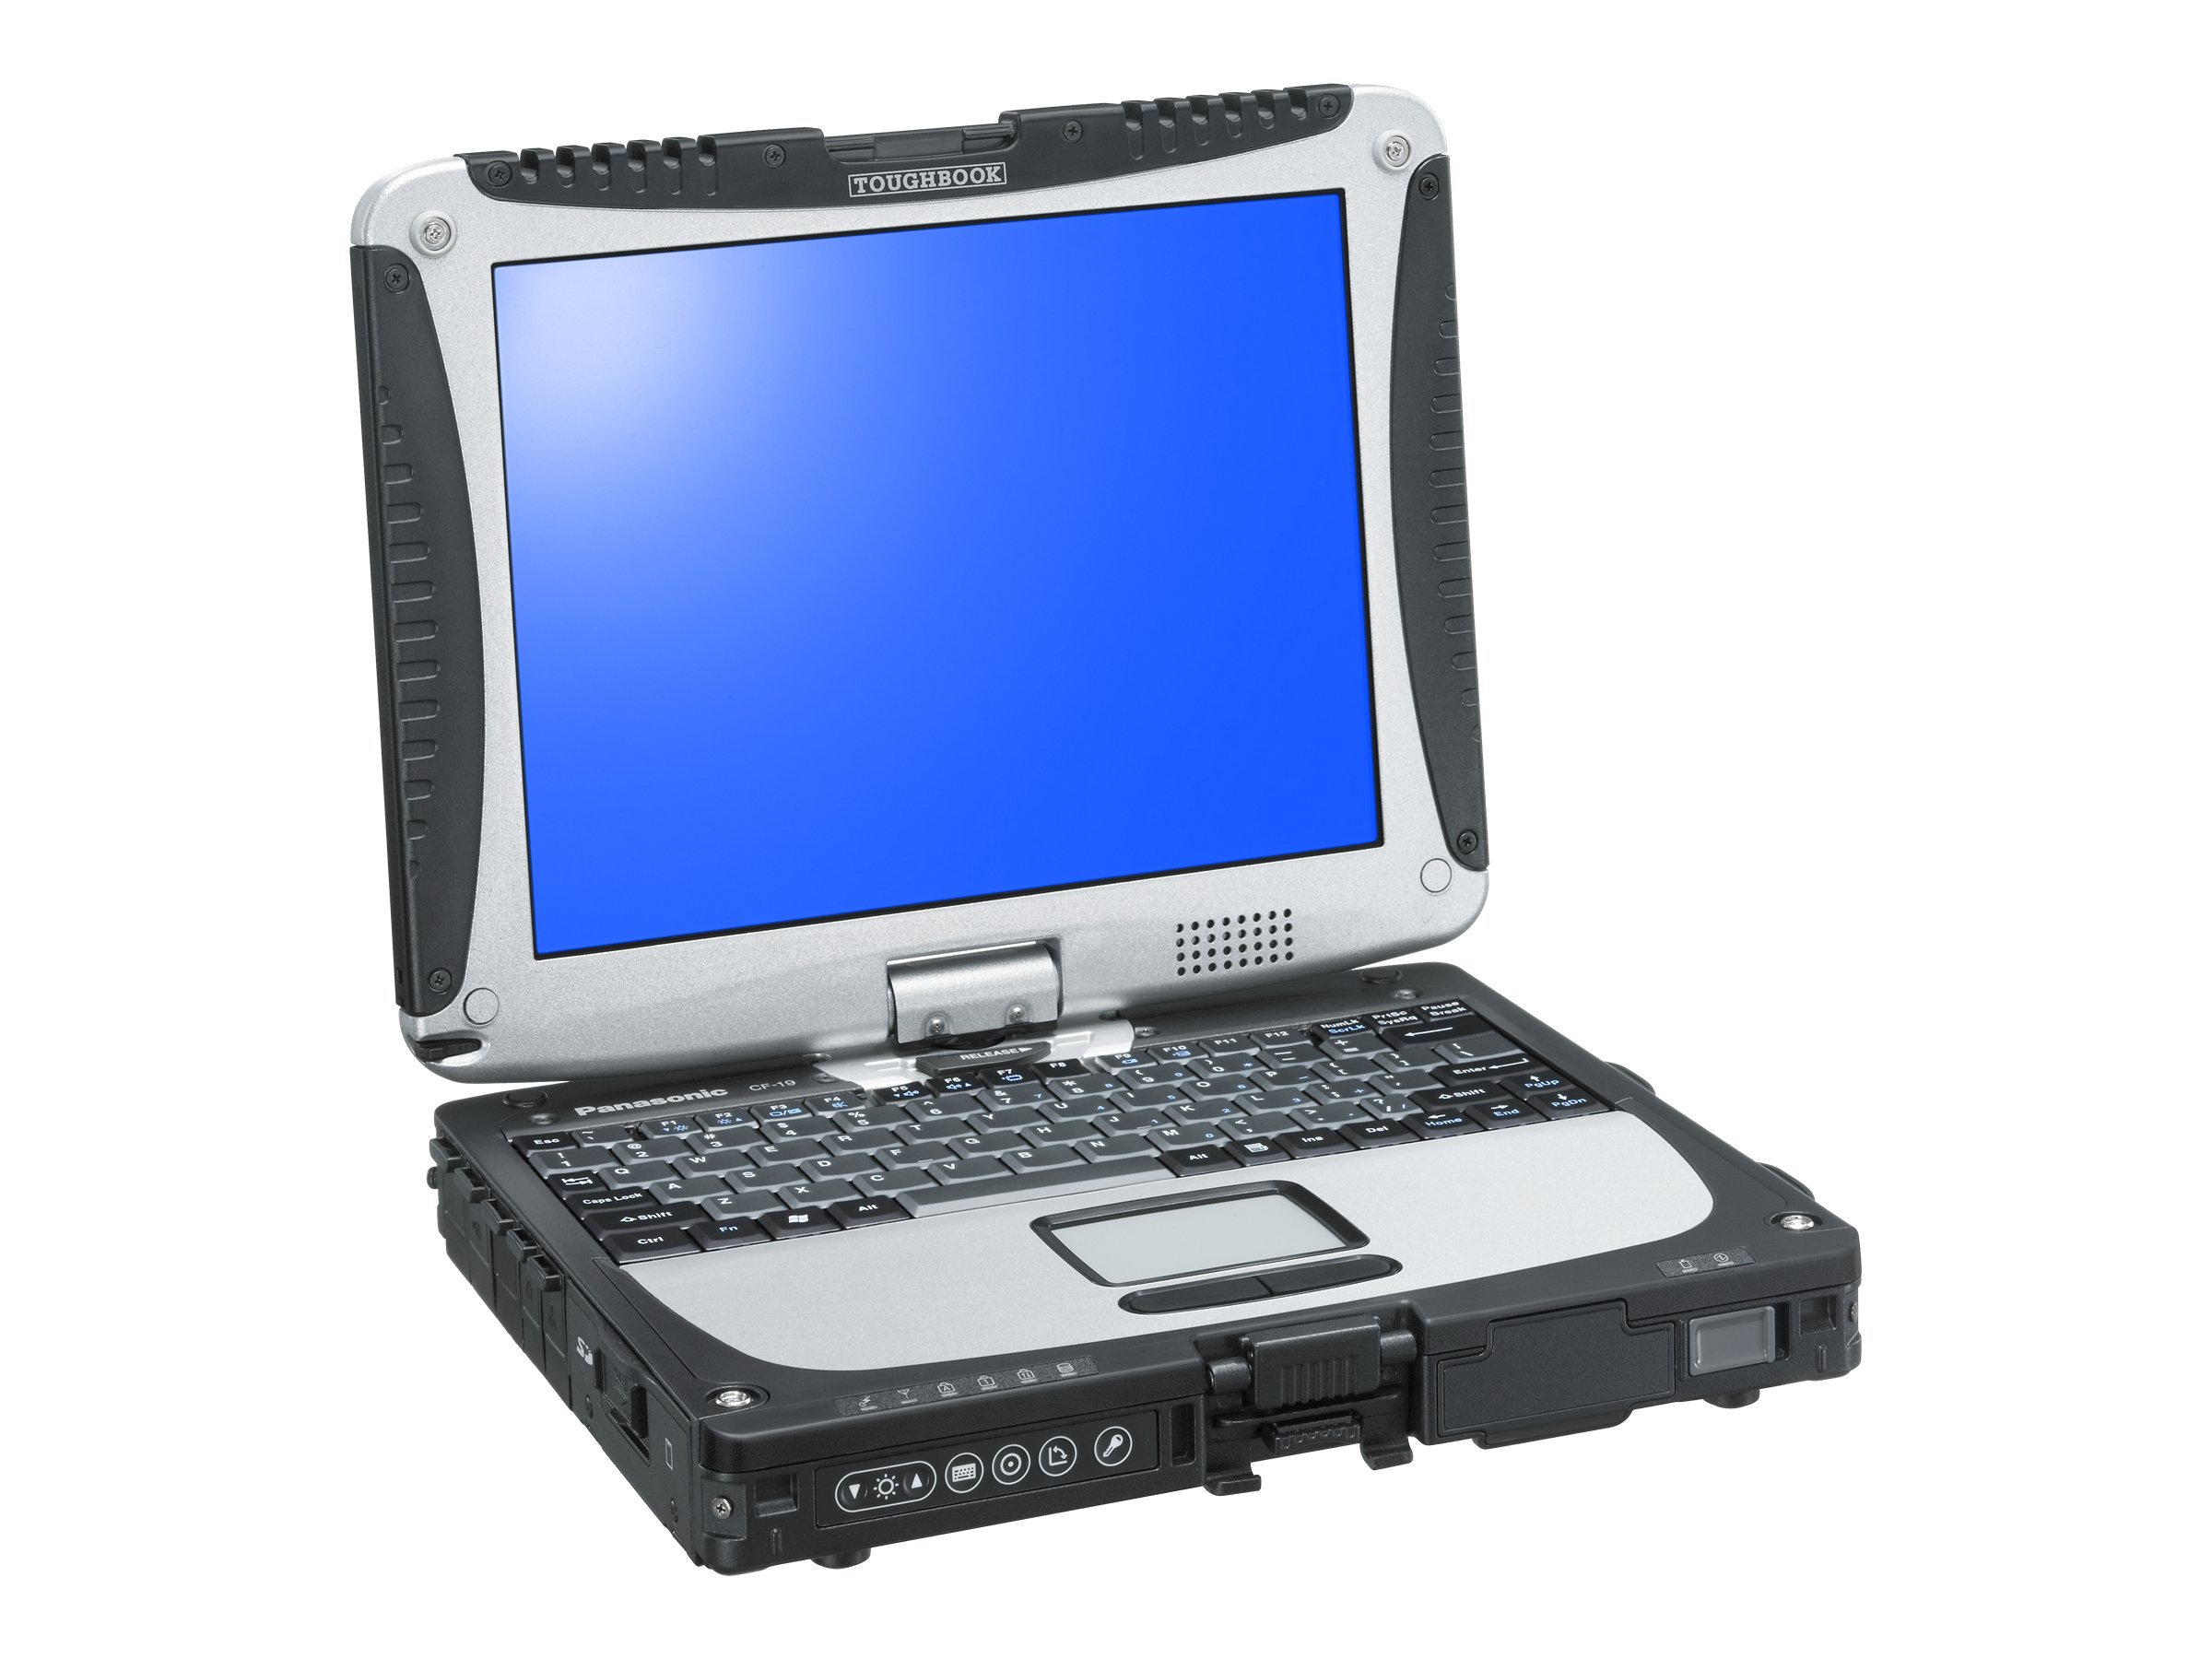 Panasonic Toughbook 19 Core i5-3610ME 2.7GHz W7